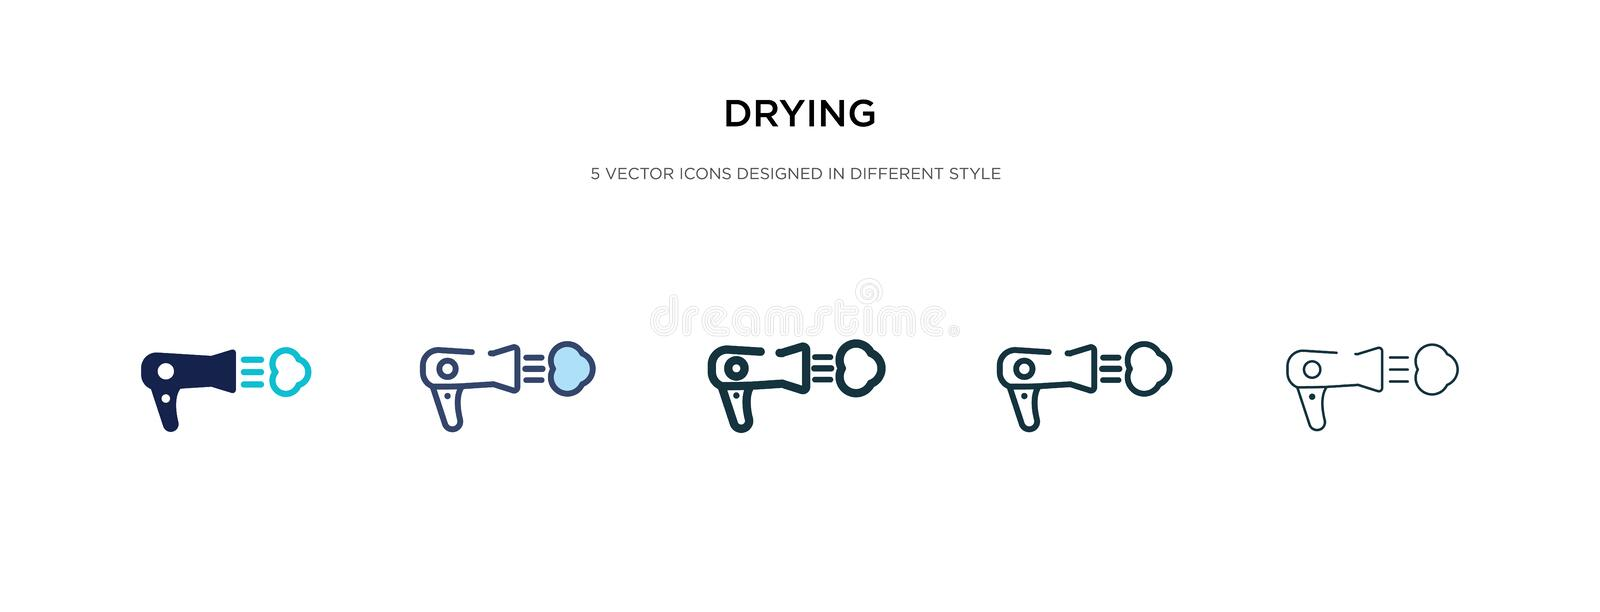 Drying icon in different style vector illustration. two colored and black drying vector icons designed in filled, outline, line royalty free illustration